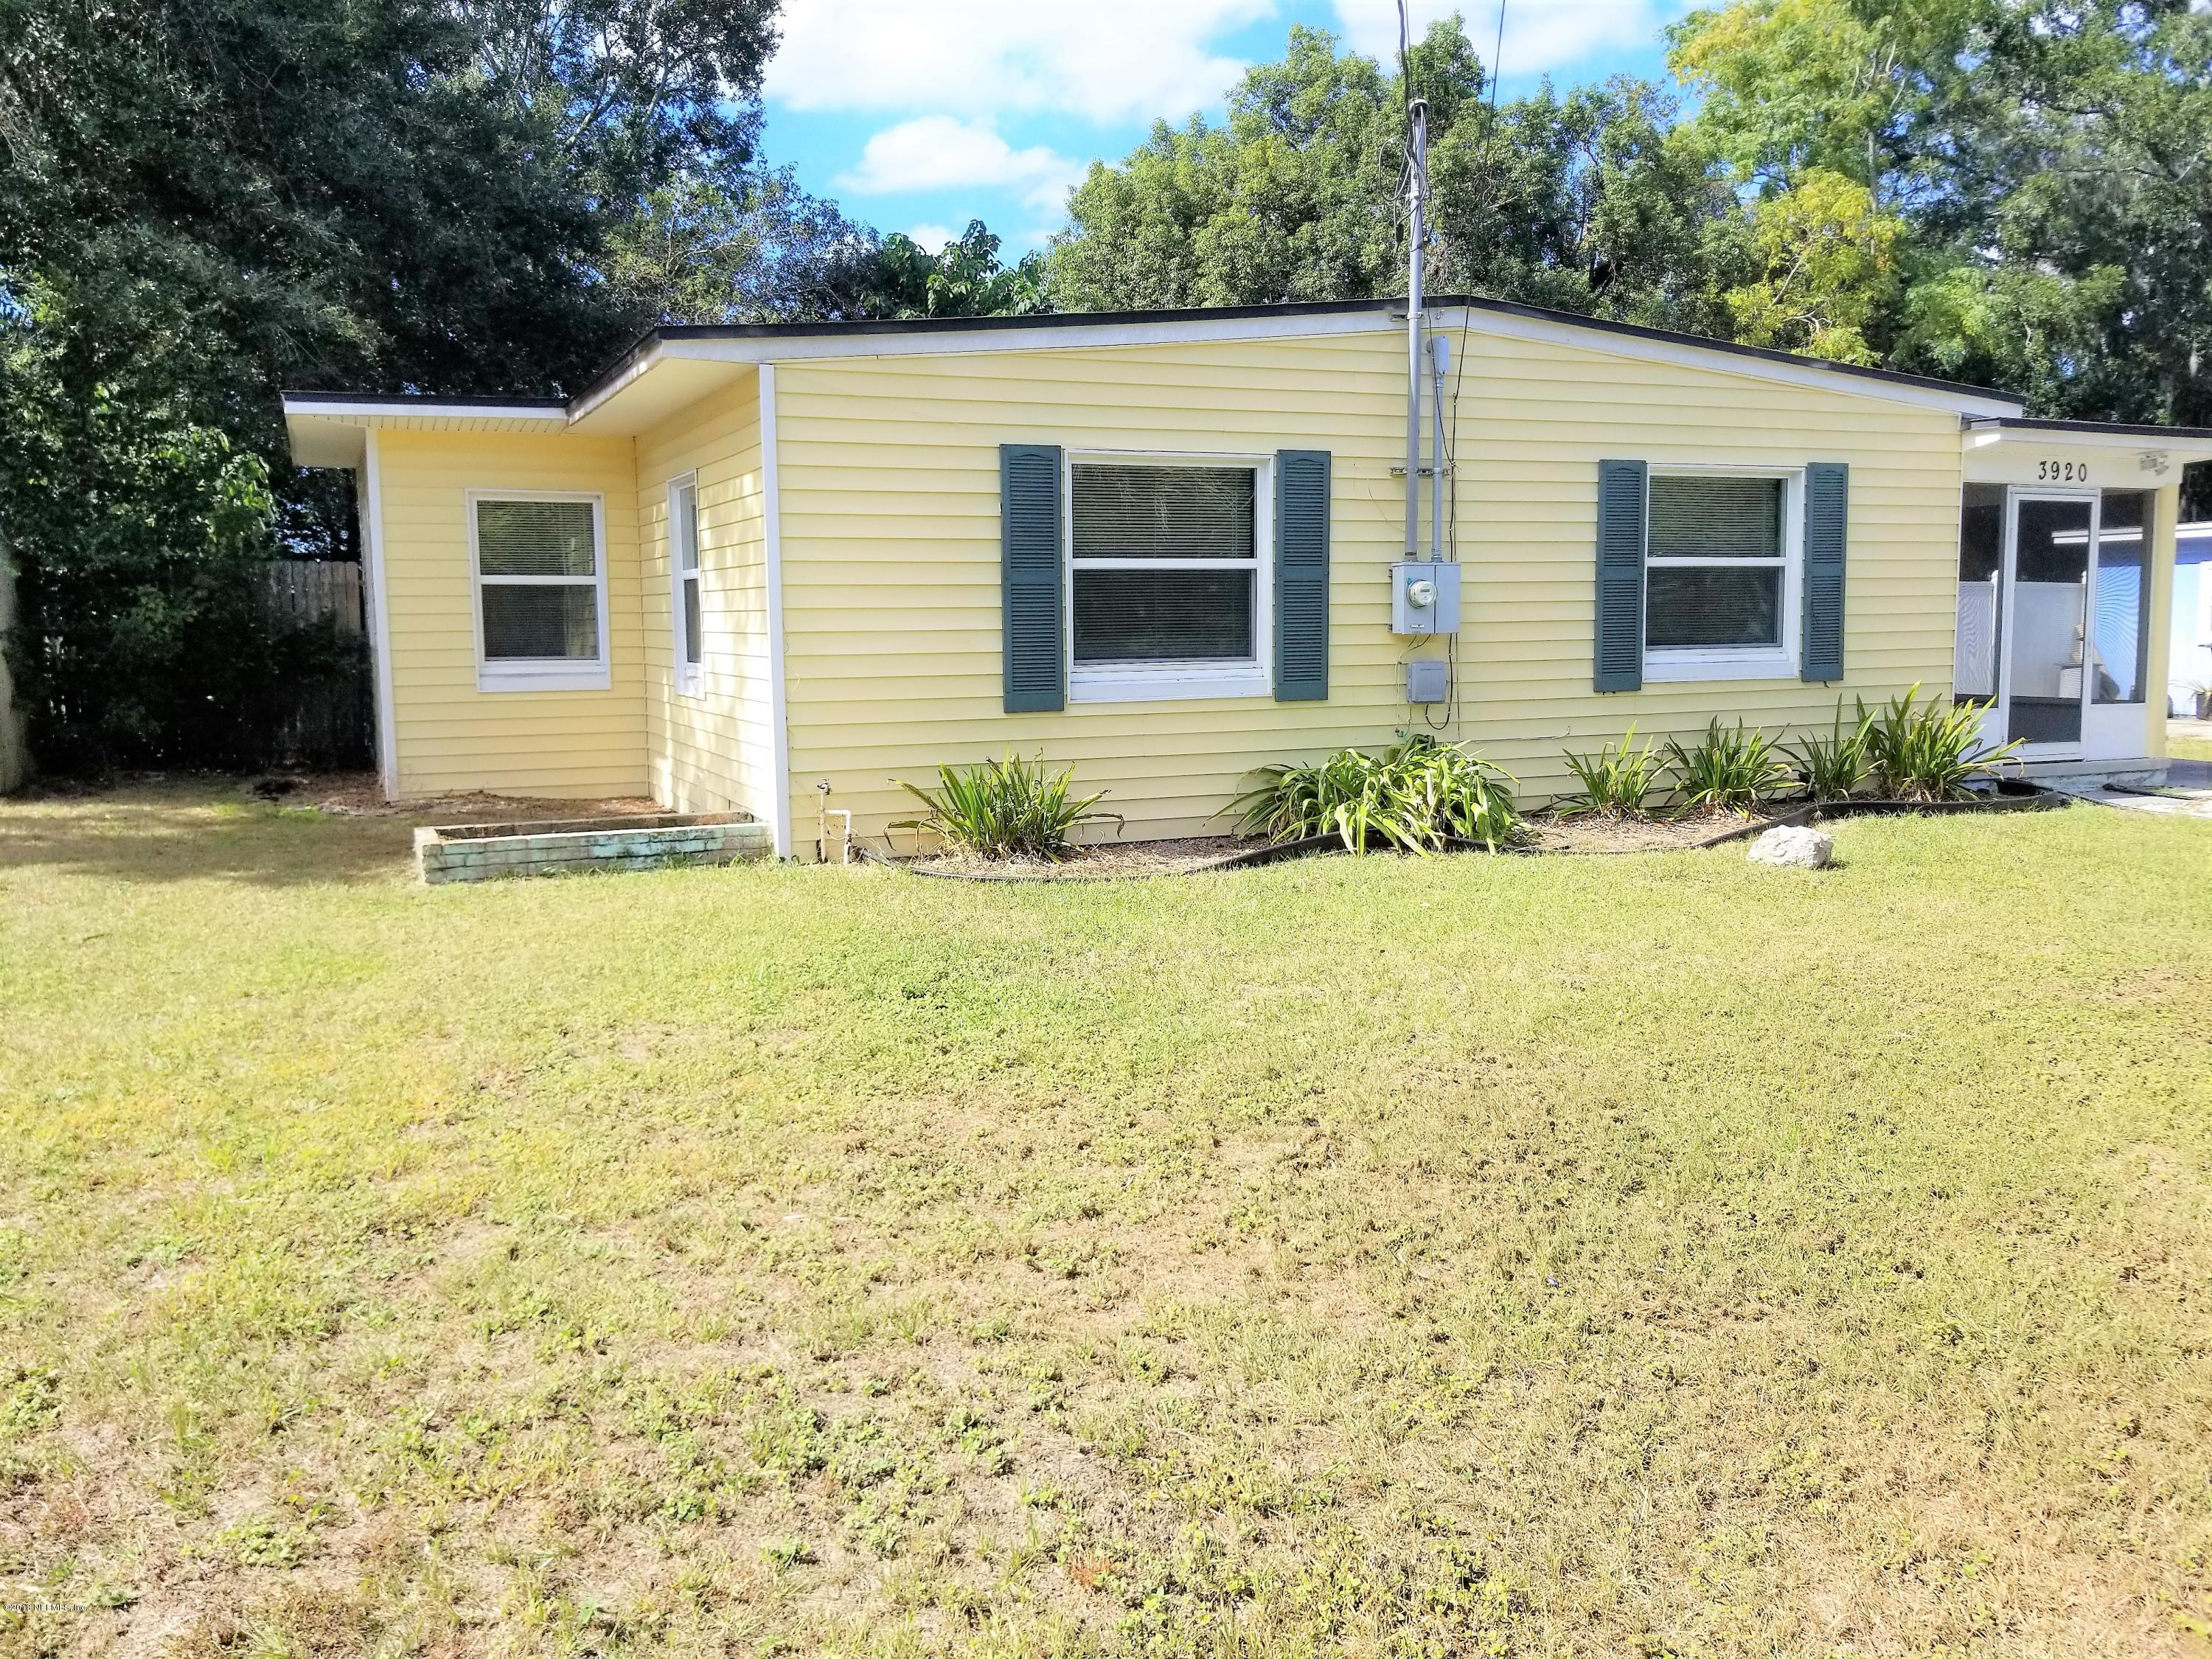 3920 RUBY, JACKSONVILLE, FLORIDA 32246, 2 Bedrooms Bedrooms, ,1 BathroomBathrooms,Residential - single family,For sale,RUBY,964852